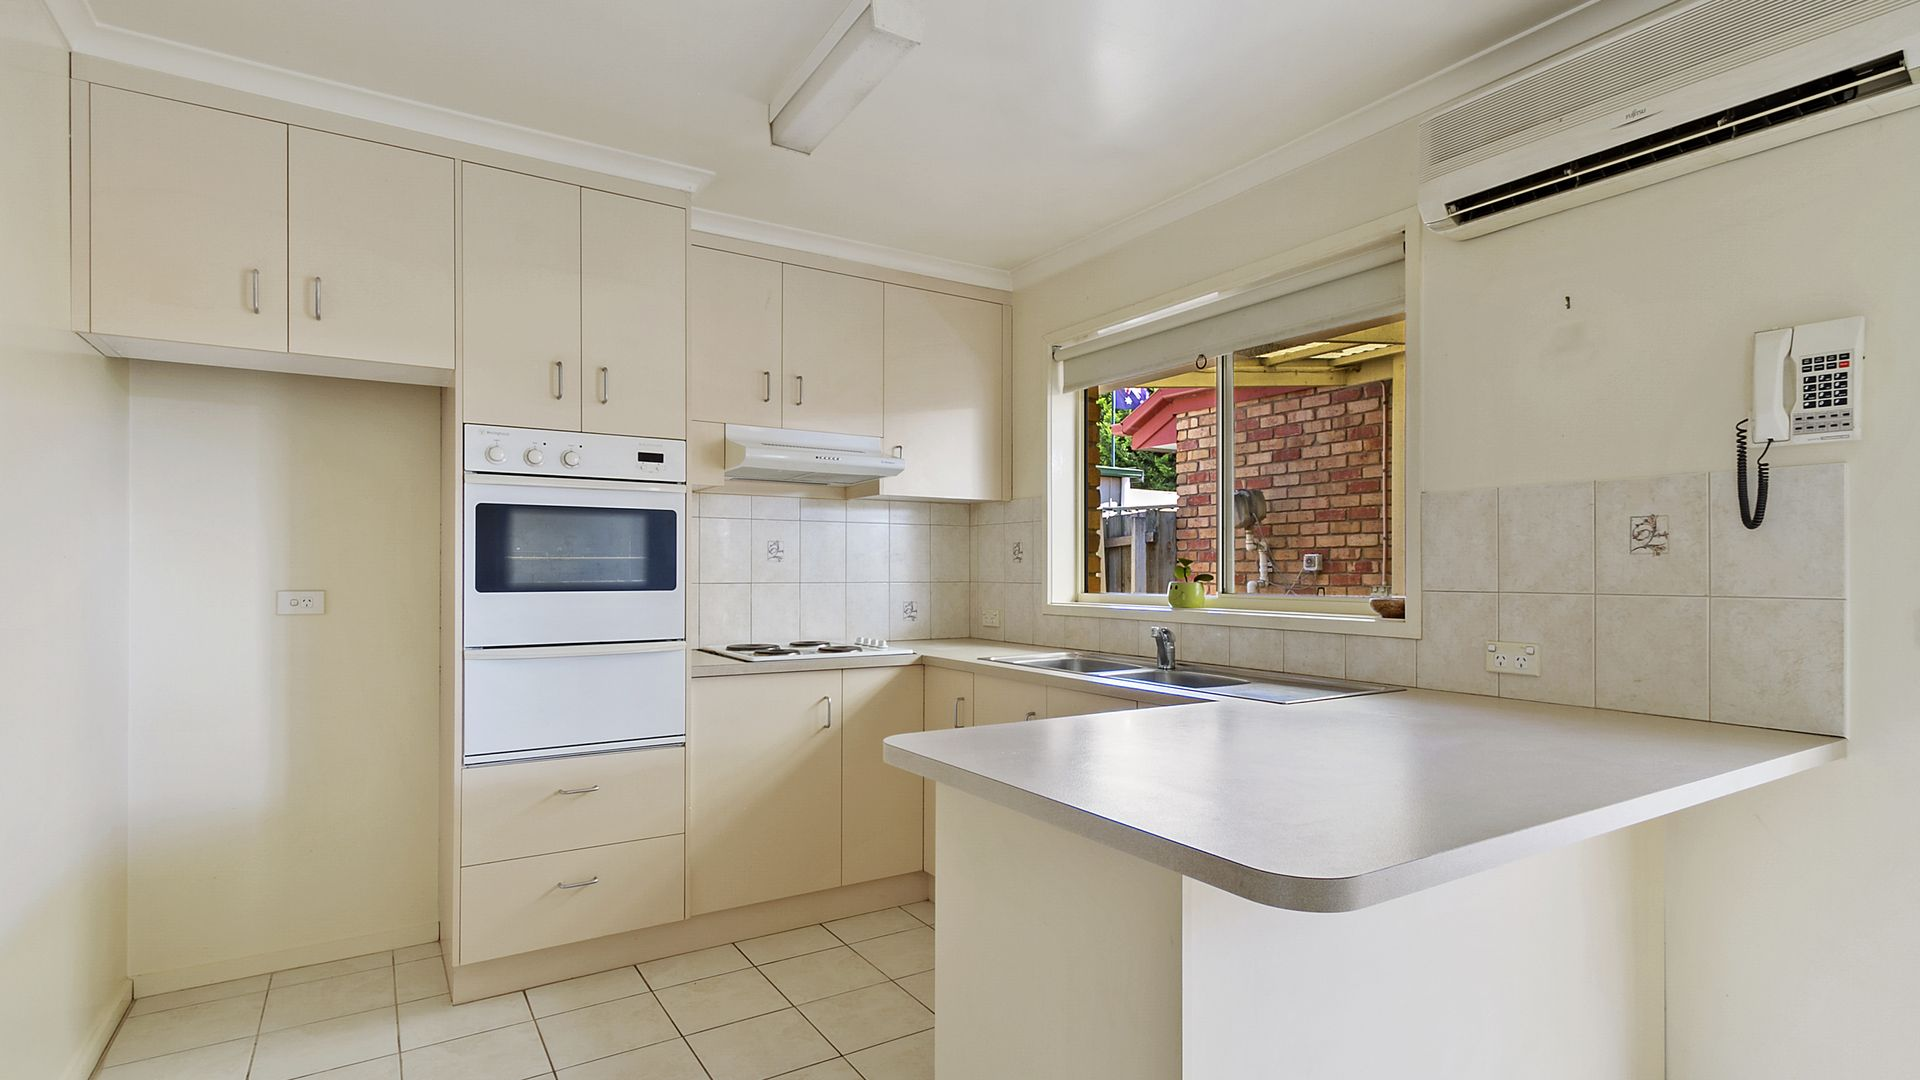 1/26 Moore St, Traralgon VIC 3844, Image 1